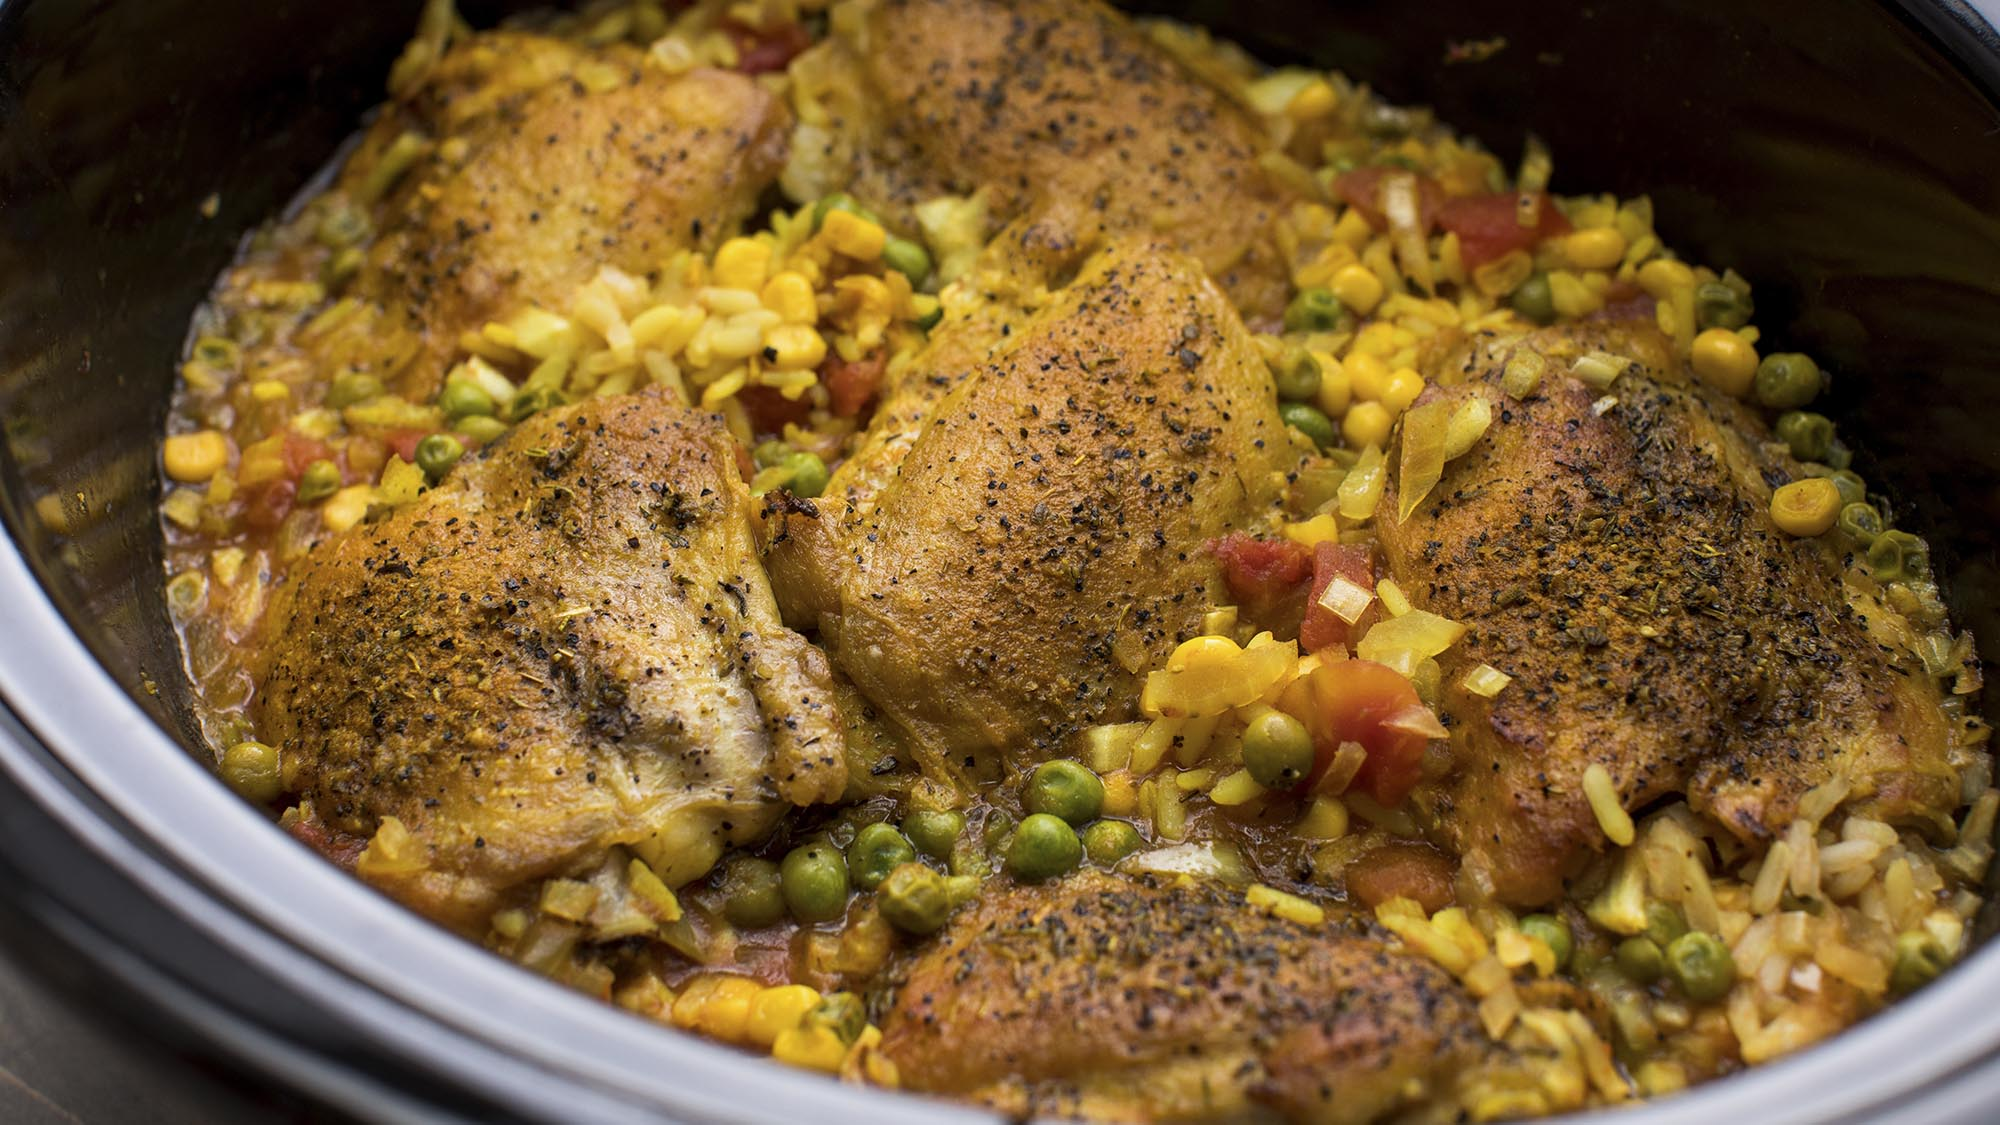 slow_cooker_brazilian_chicken_and_rice_2000x1125.jpg